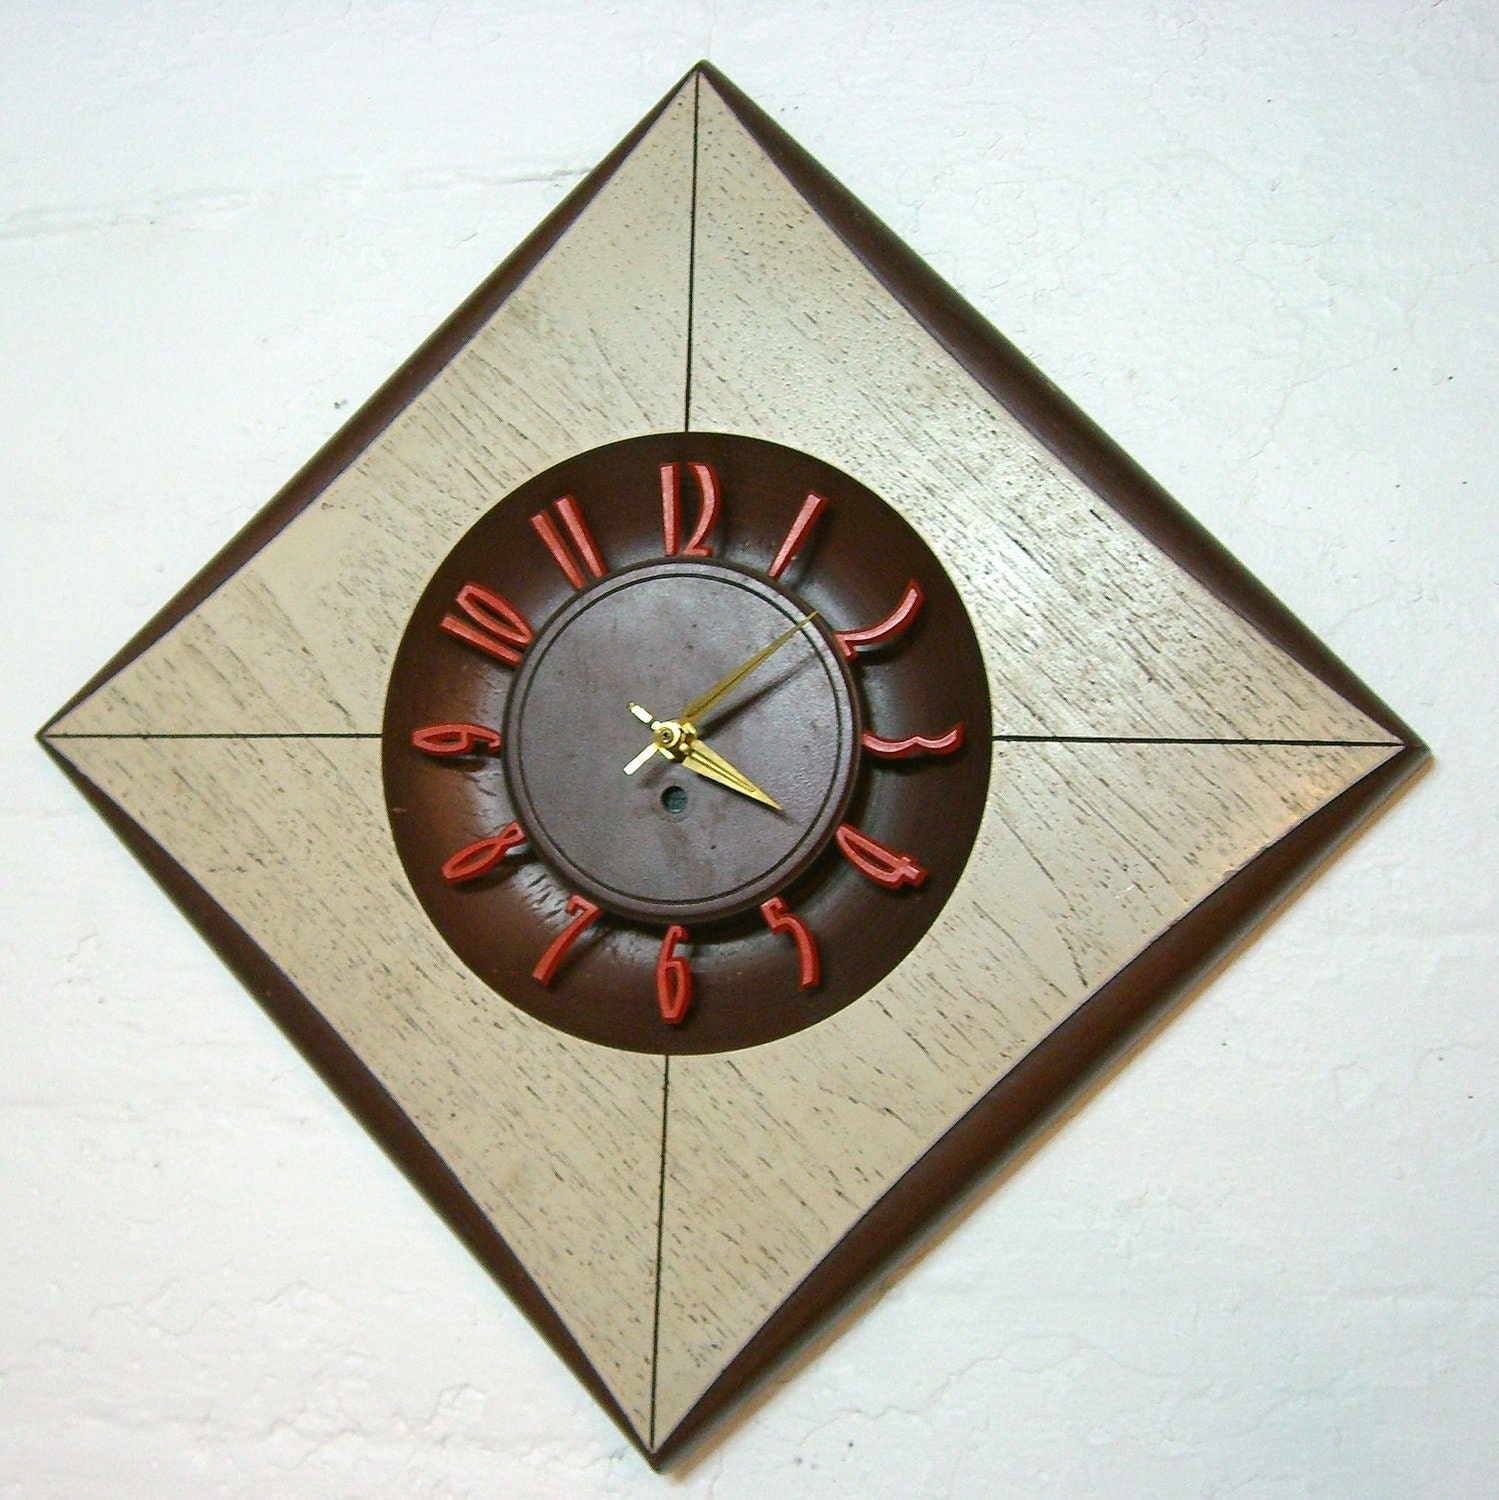 swanky mid century modern wall clock diamond shaped